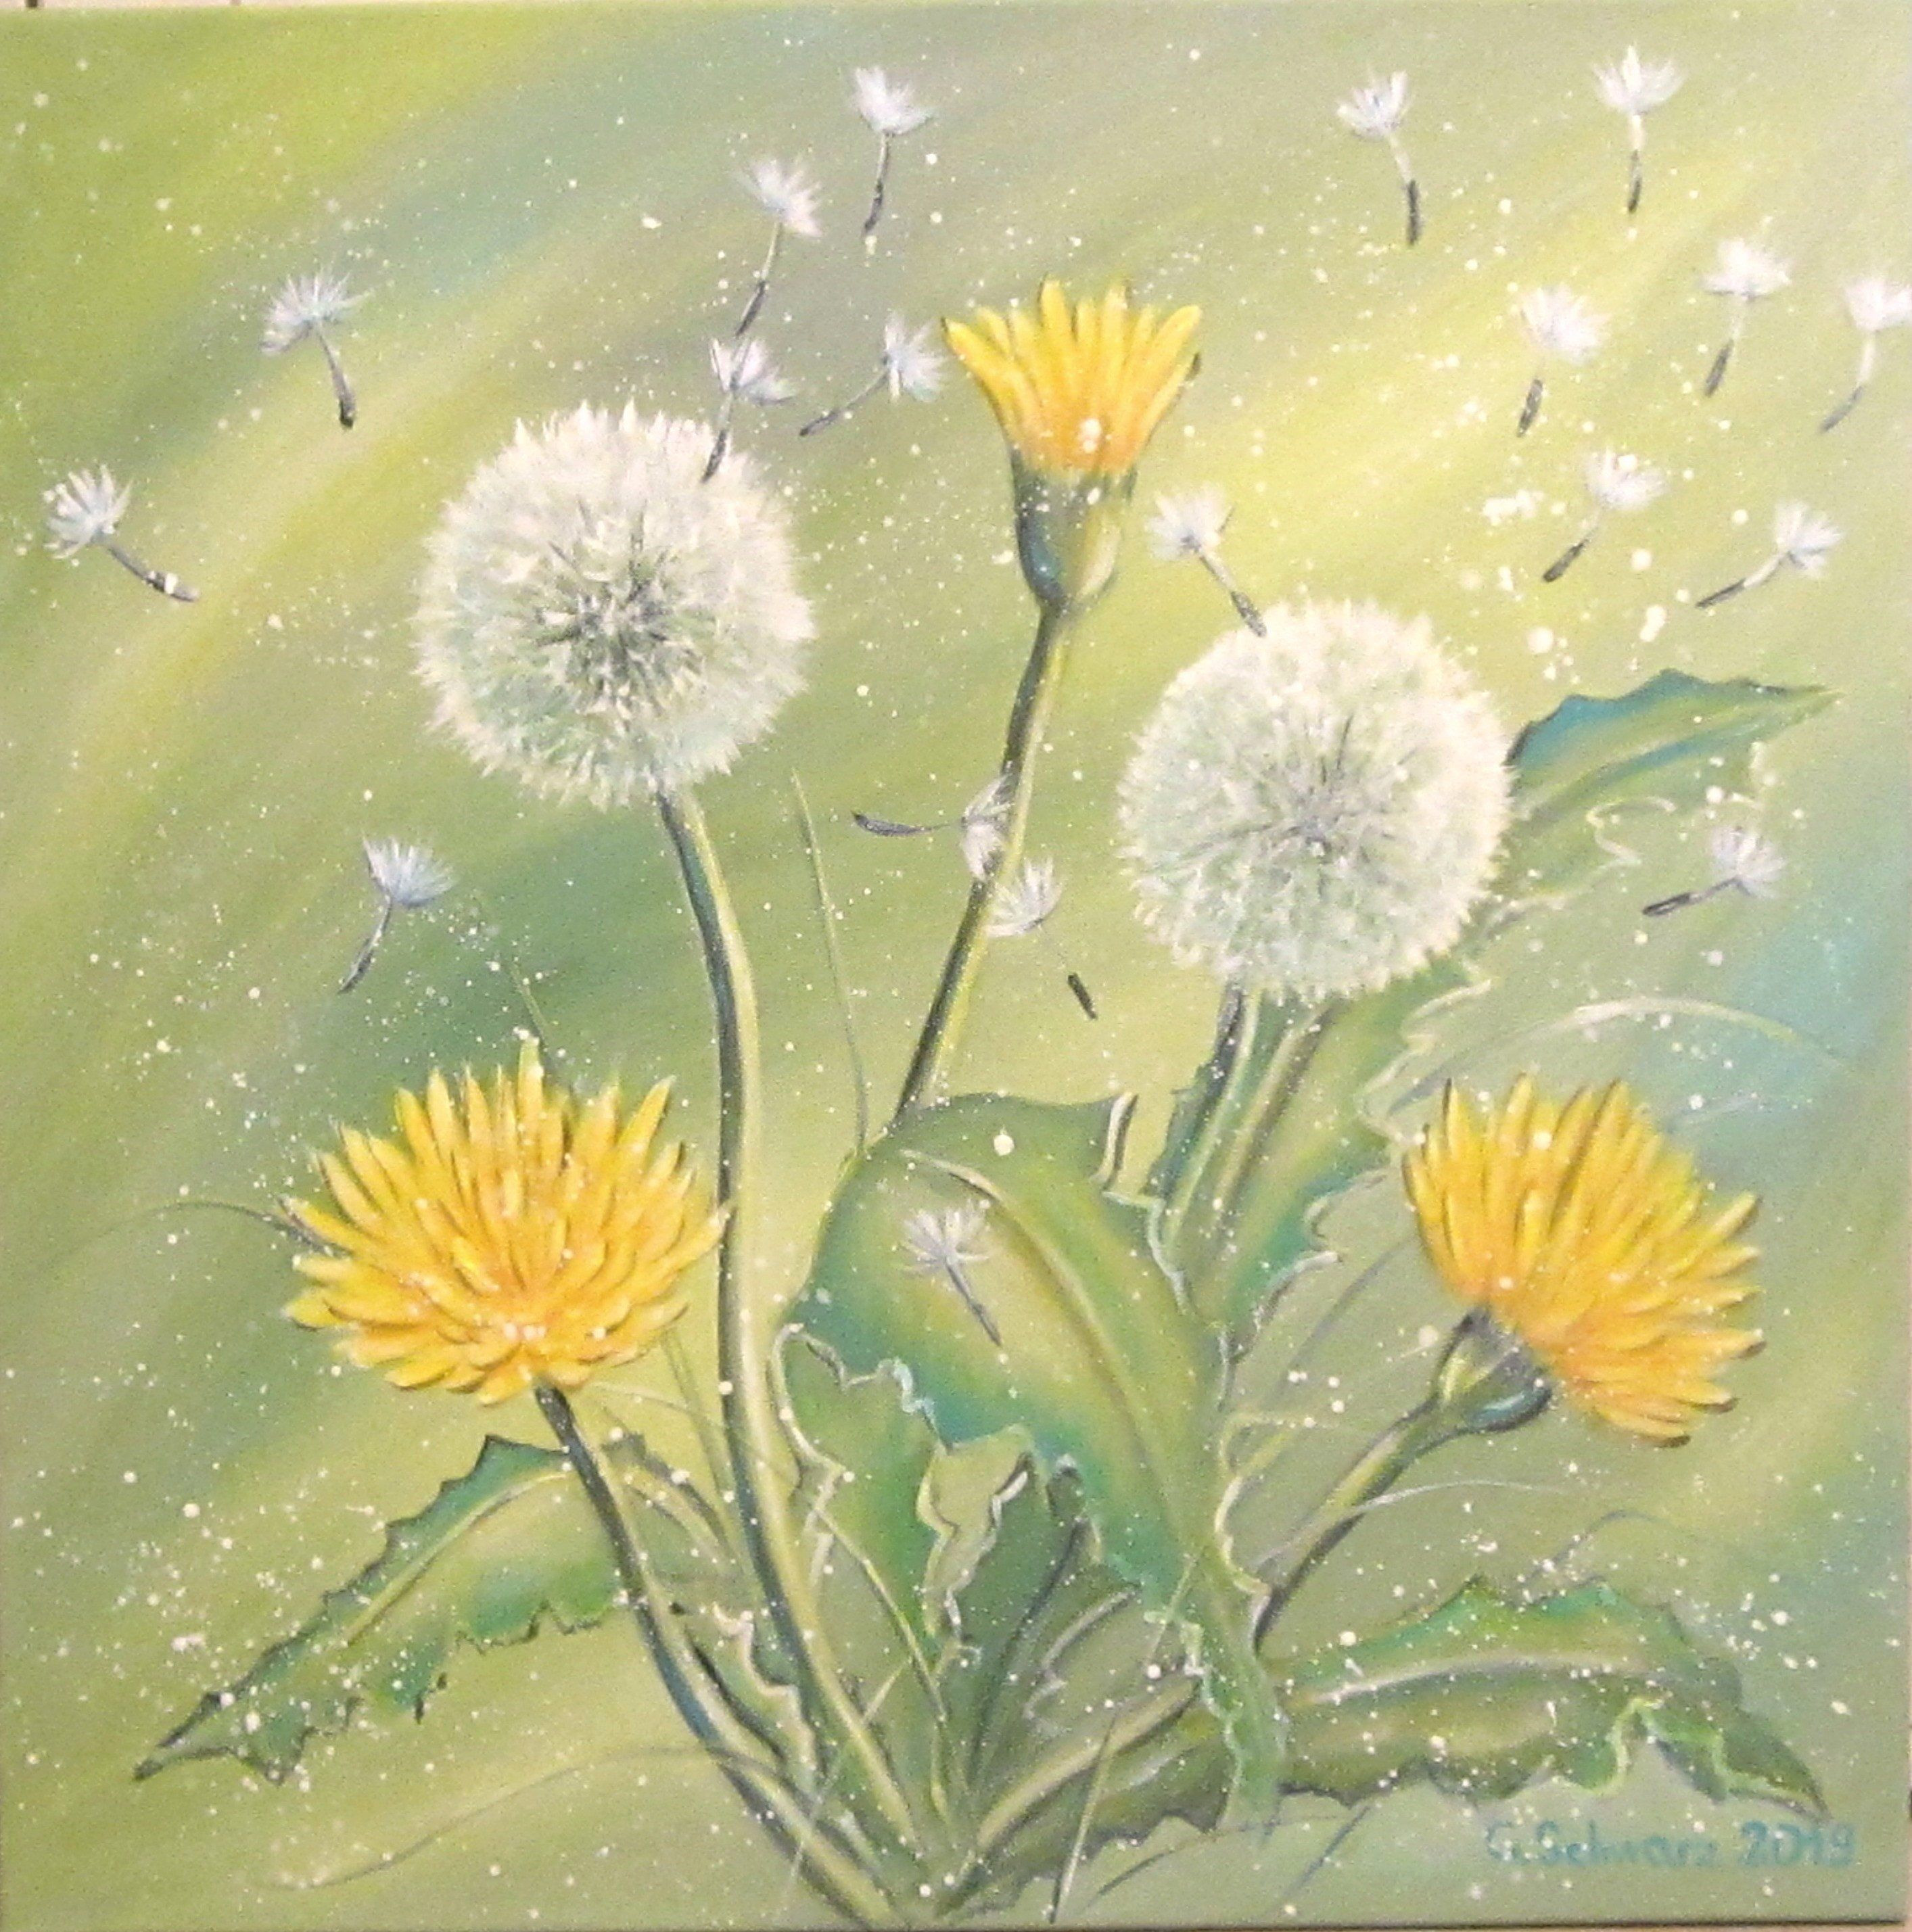 Dandelion - acrylic painting with dandelions and a dandelion